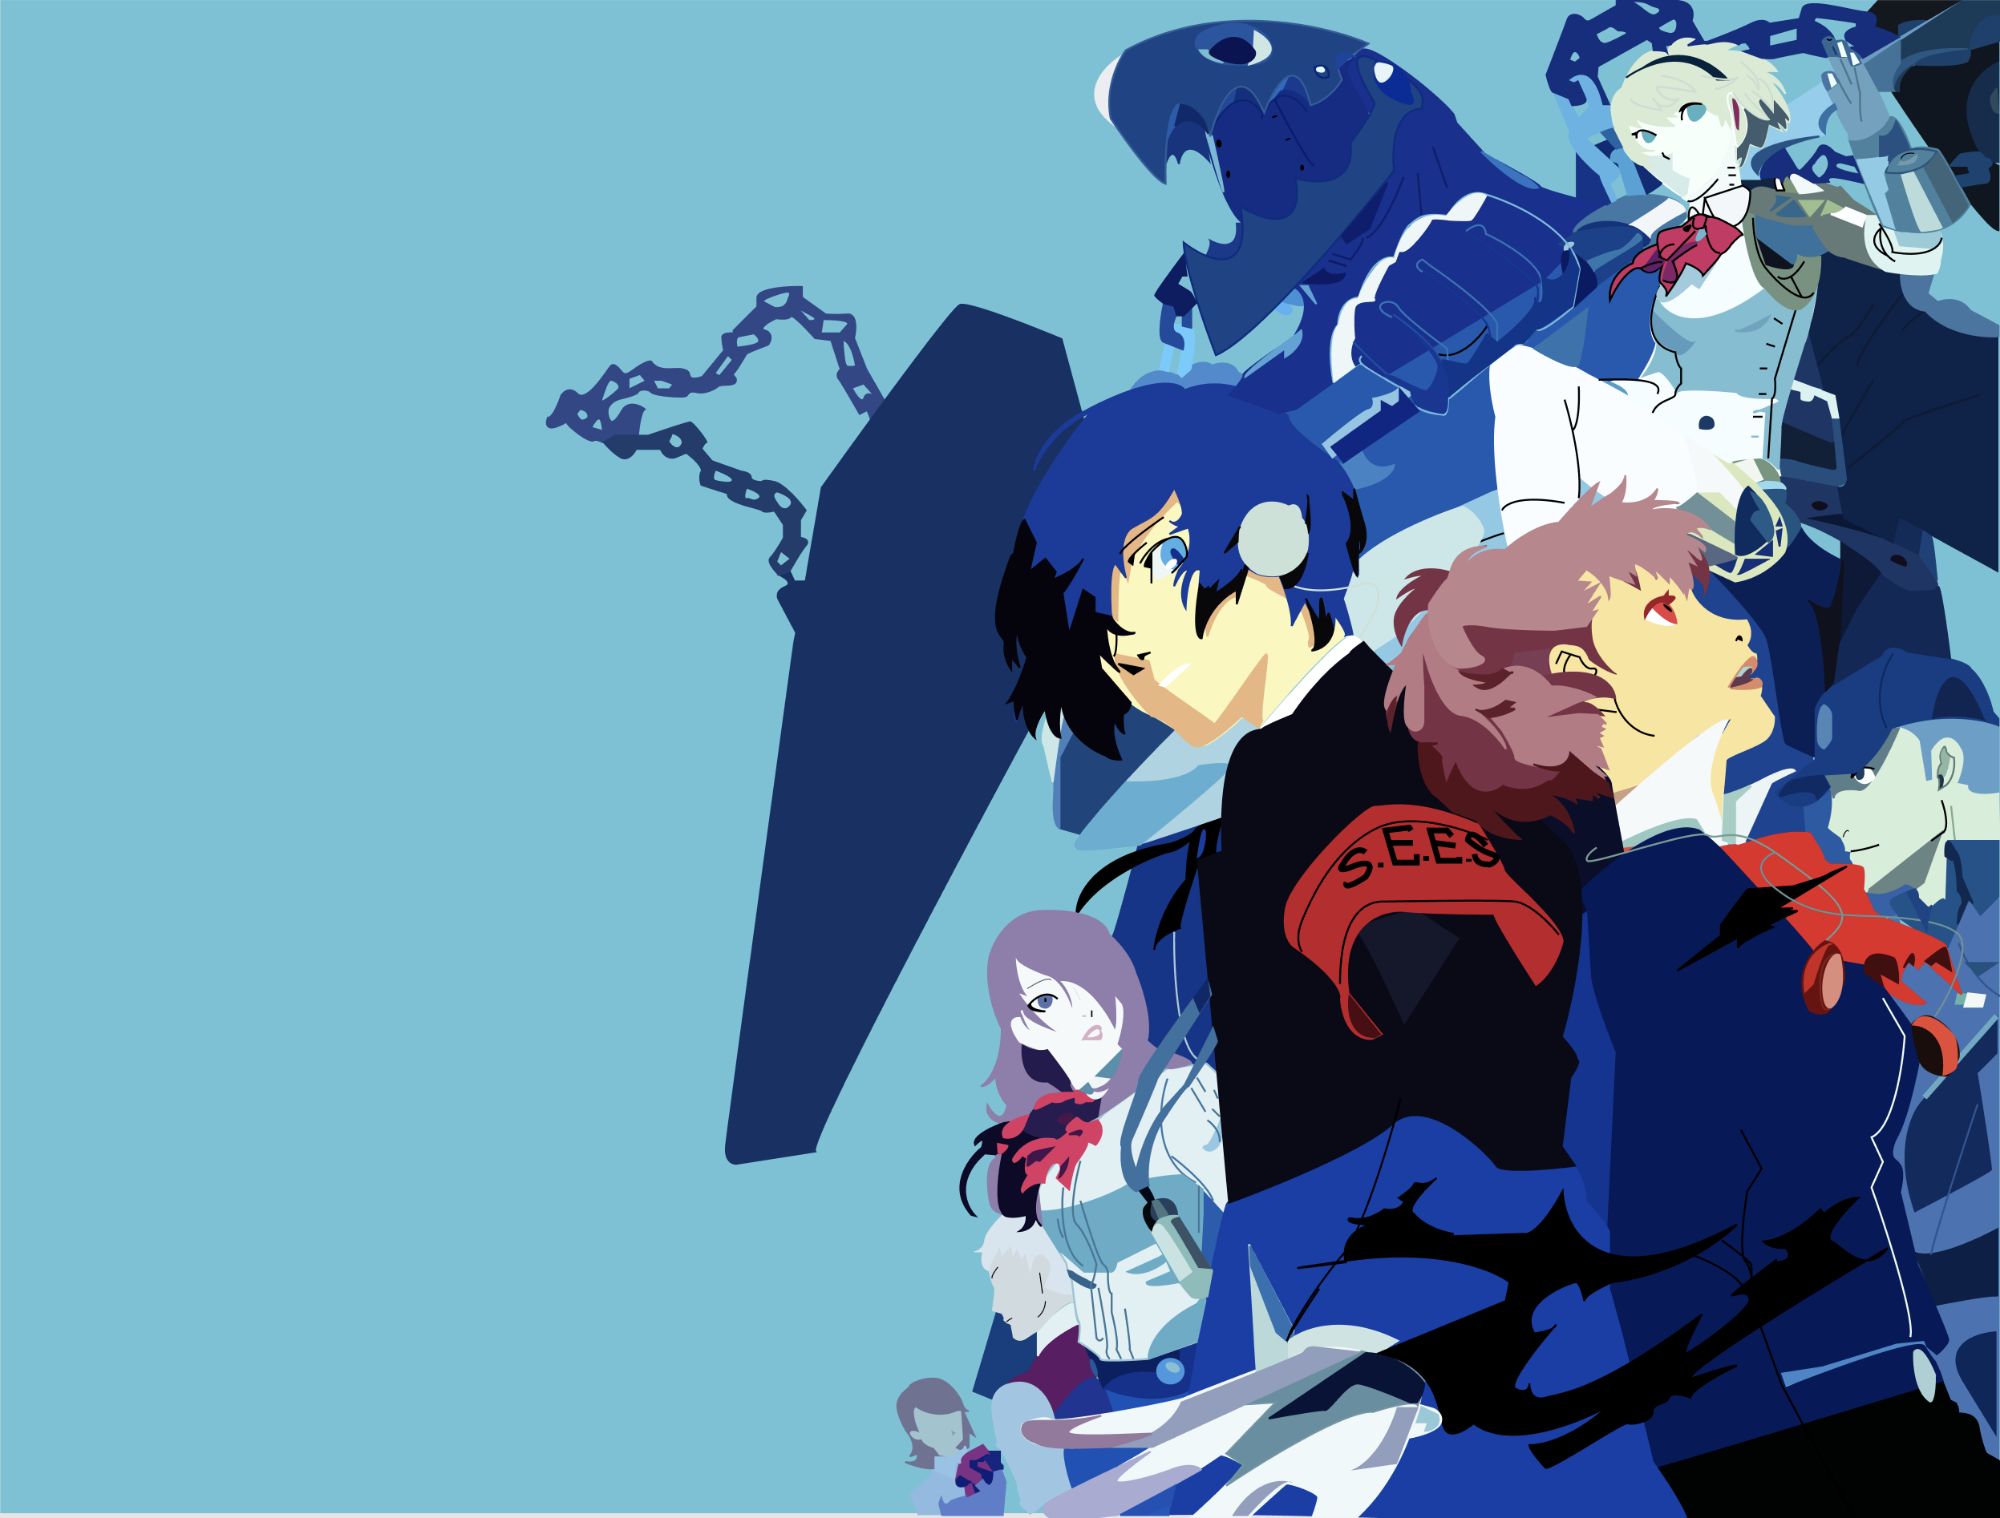 Finally Done! Persona 3 Portable box art